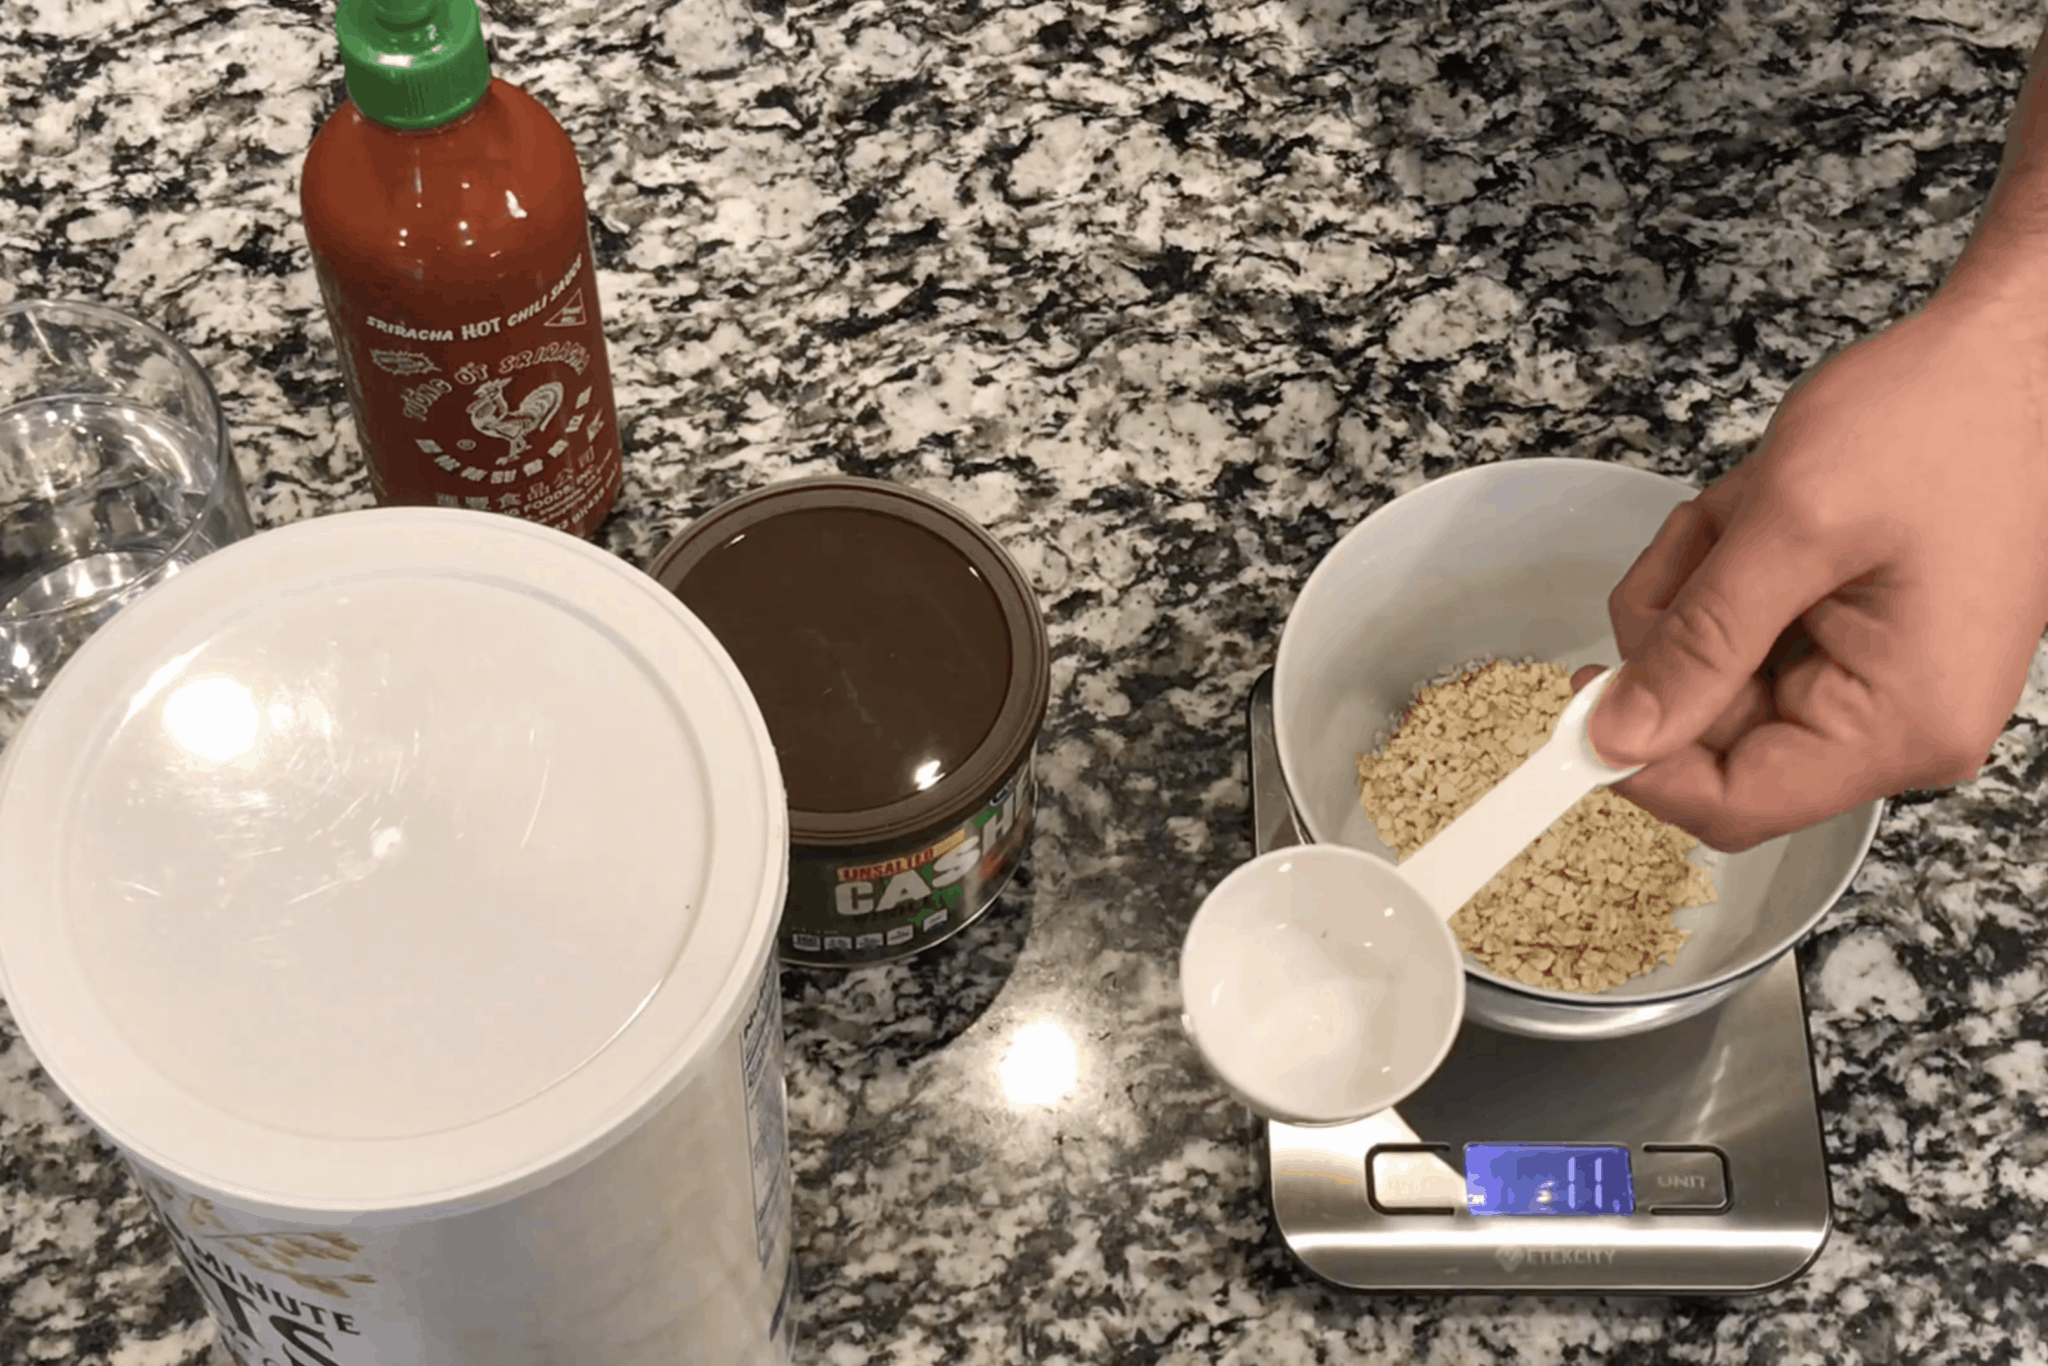 How to Use a Food Scale for Cooking and Tracking Macros